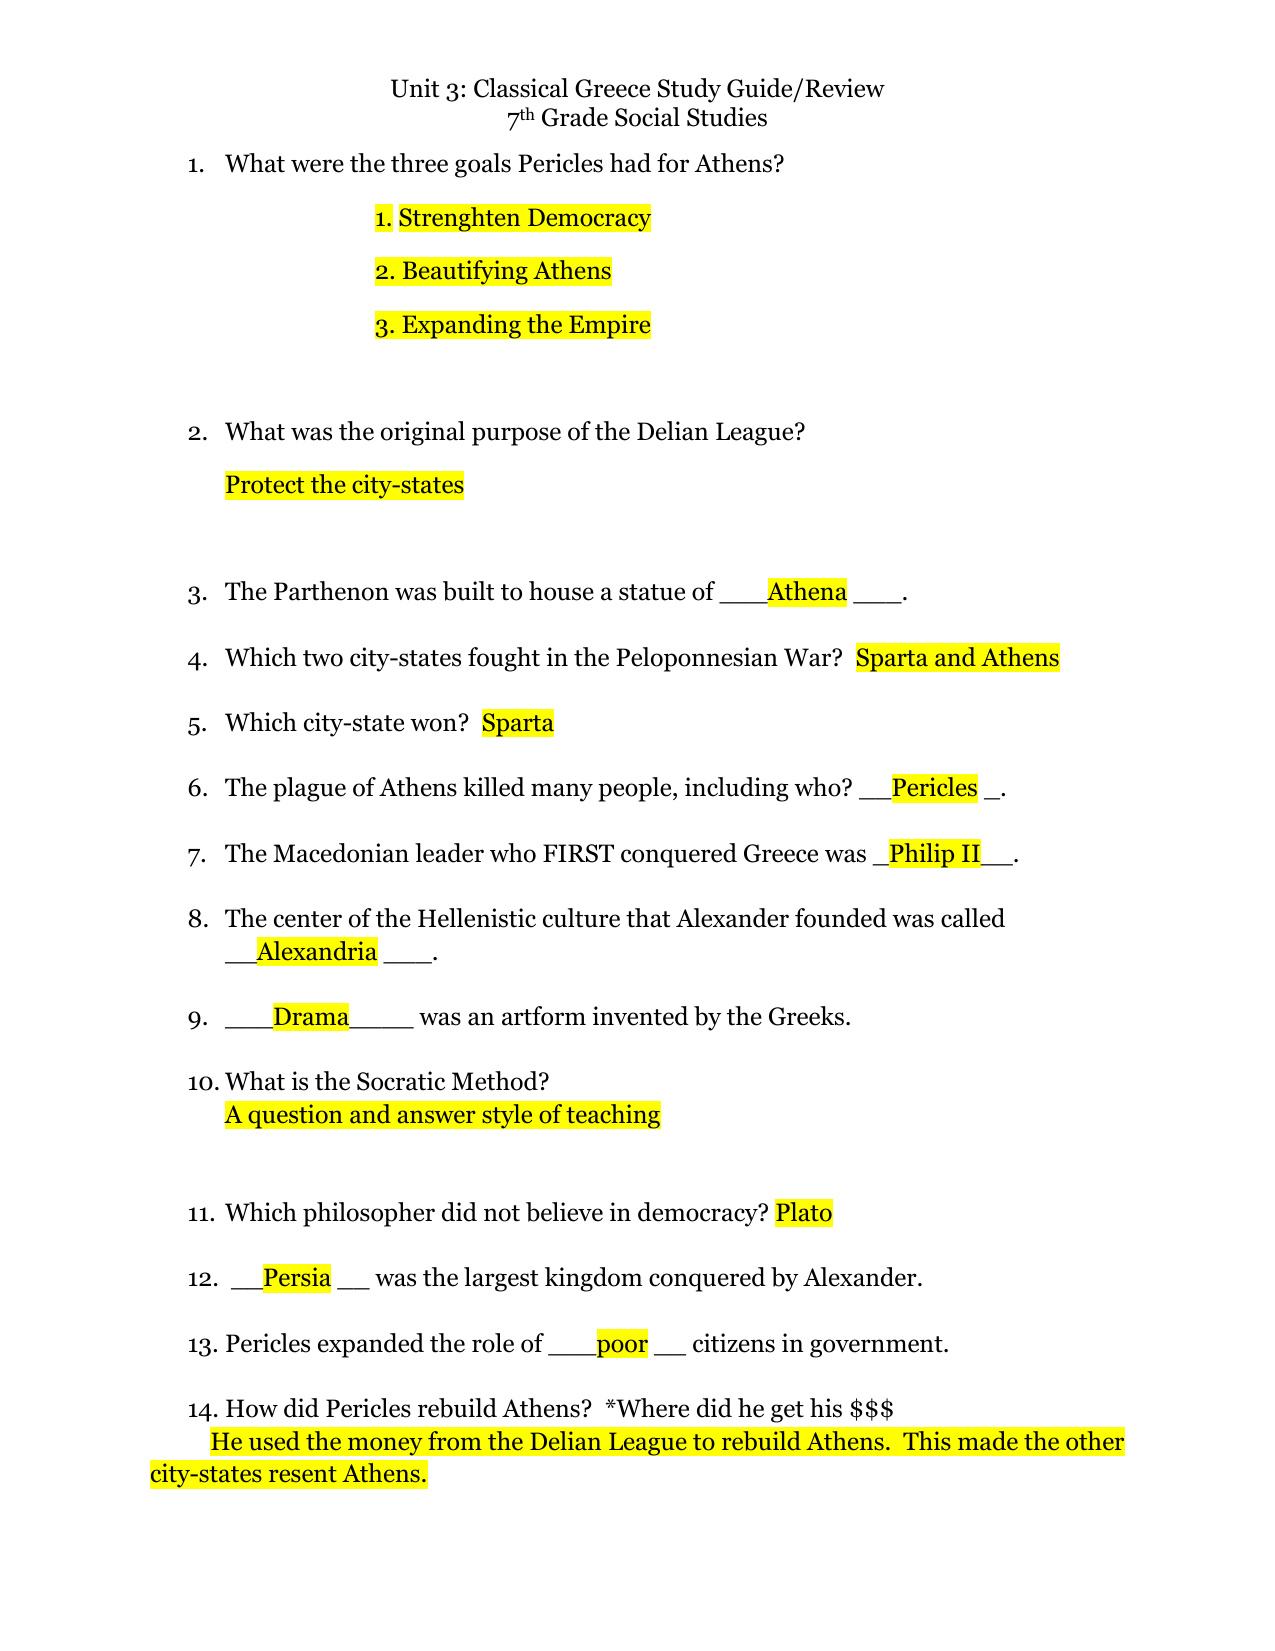 Unit 3 Classical Greece Study Guide Review 7 Grade Social